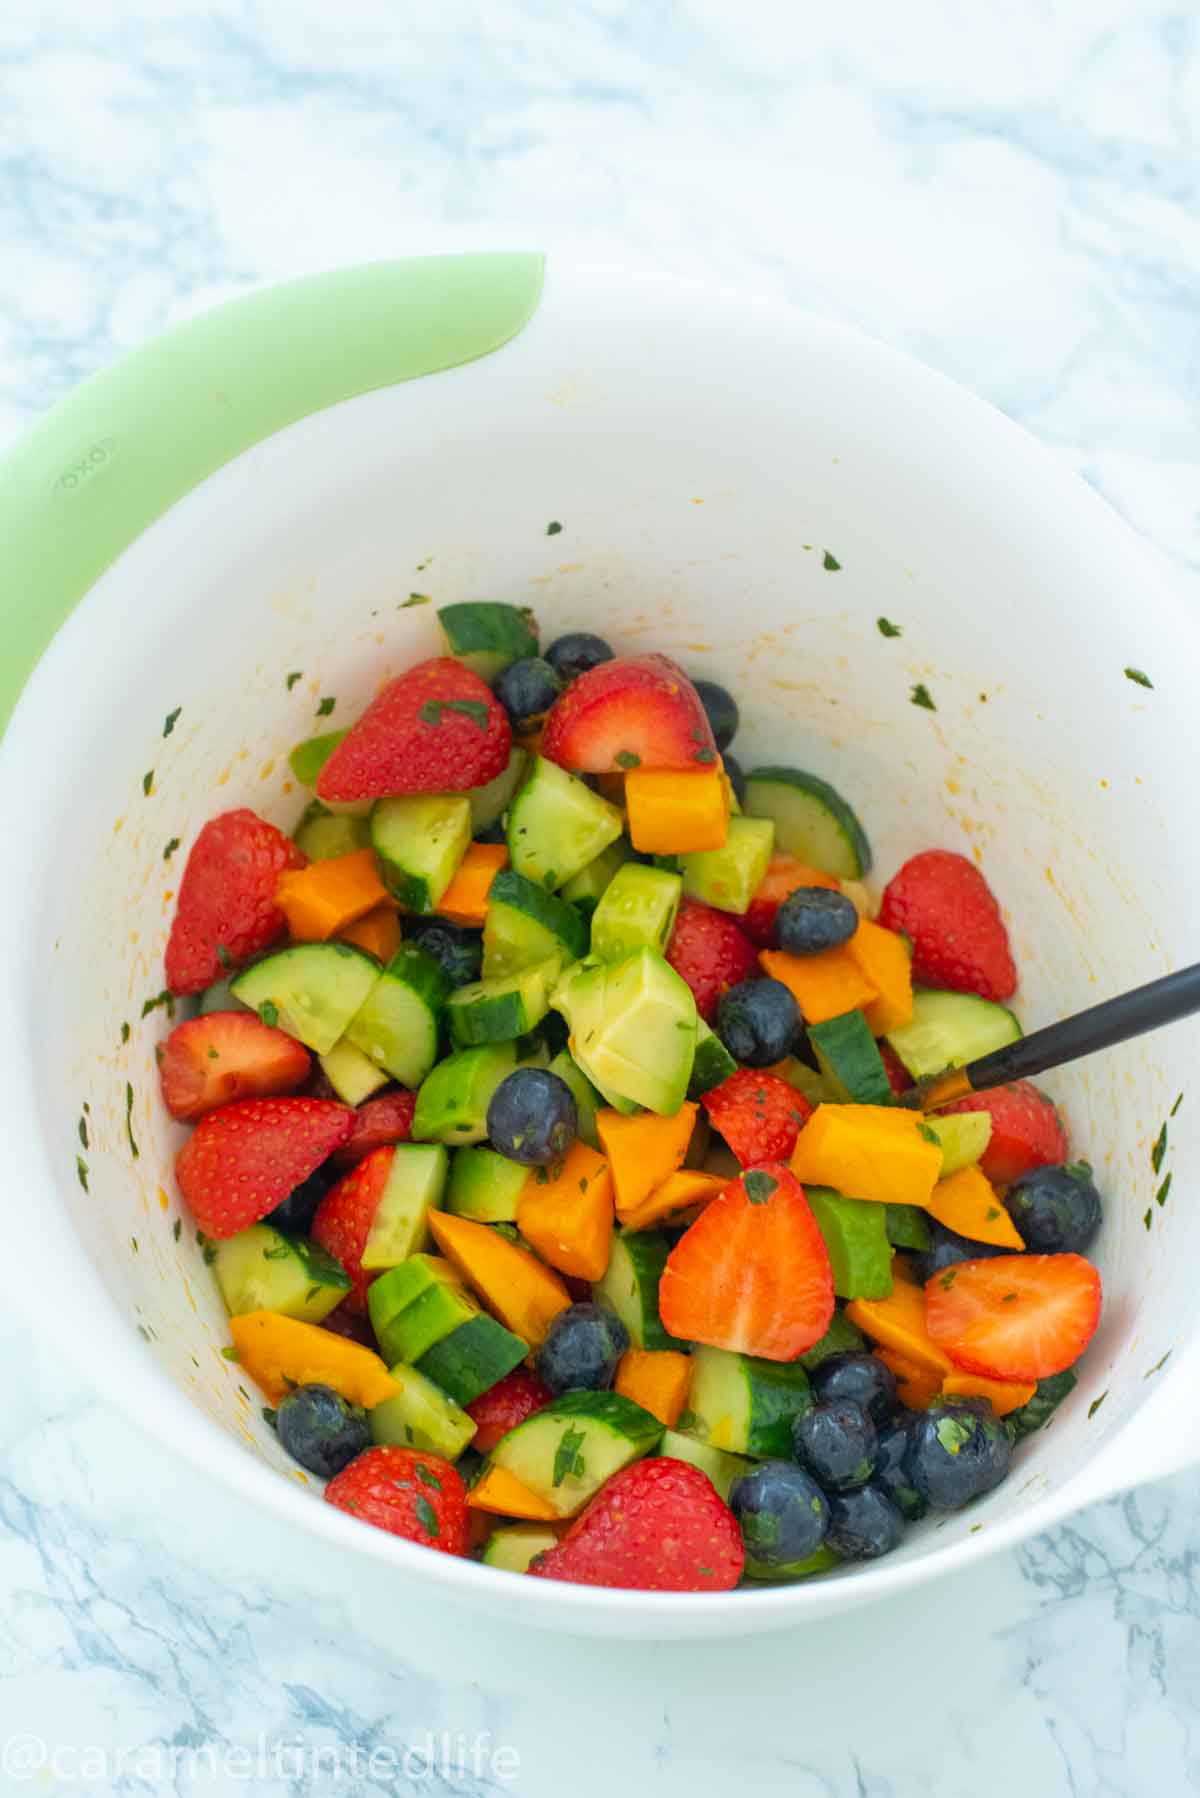 fruits and salad dressing getting mixed in a bowl